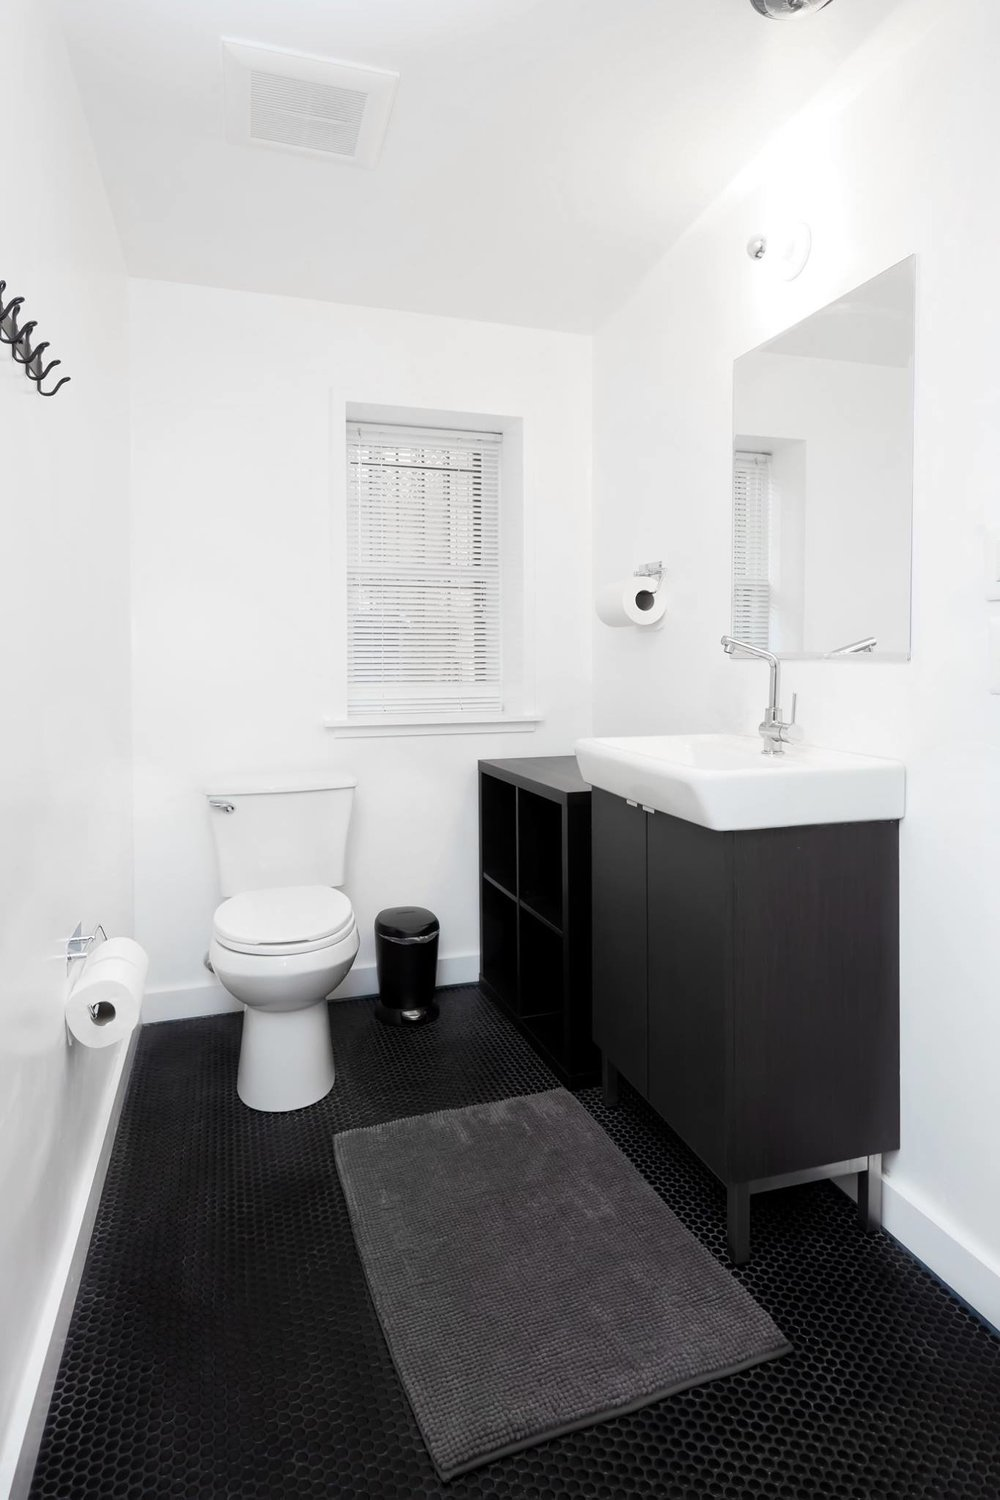 Example guest bathroom showing sink, bath mat, and toilet